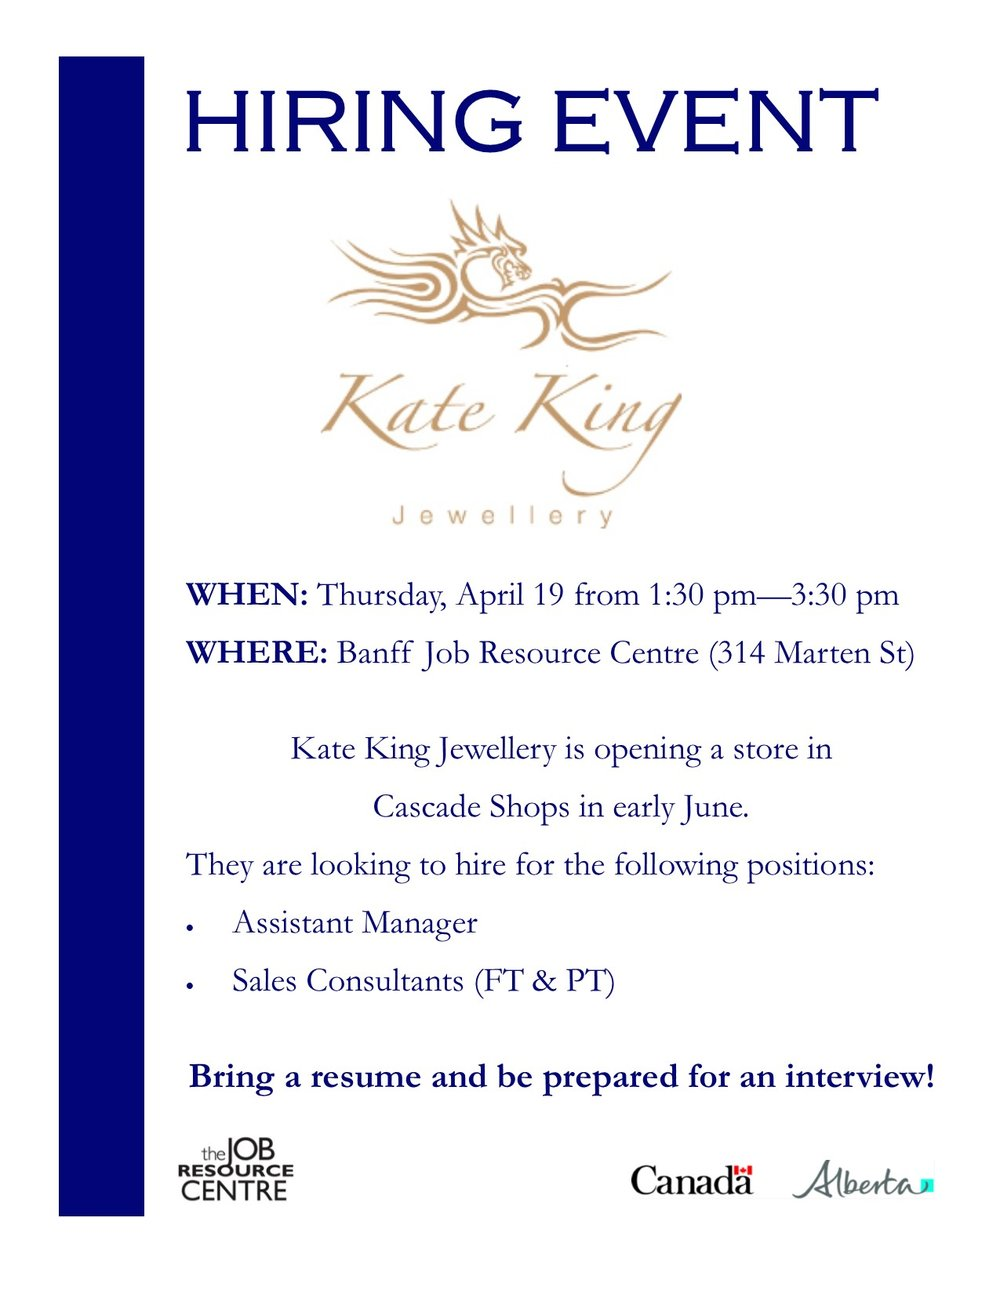 Kate King Jewellery Hiring Event.jpg